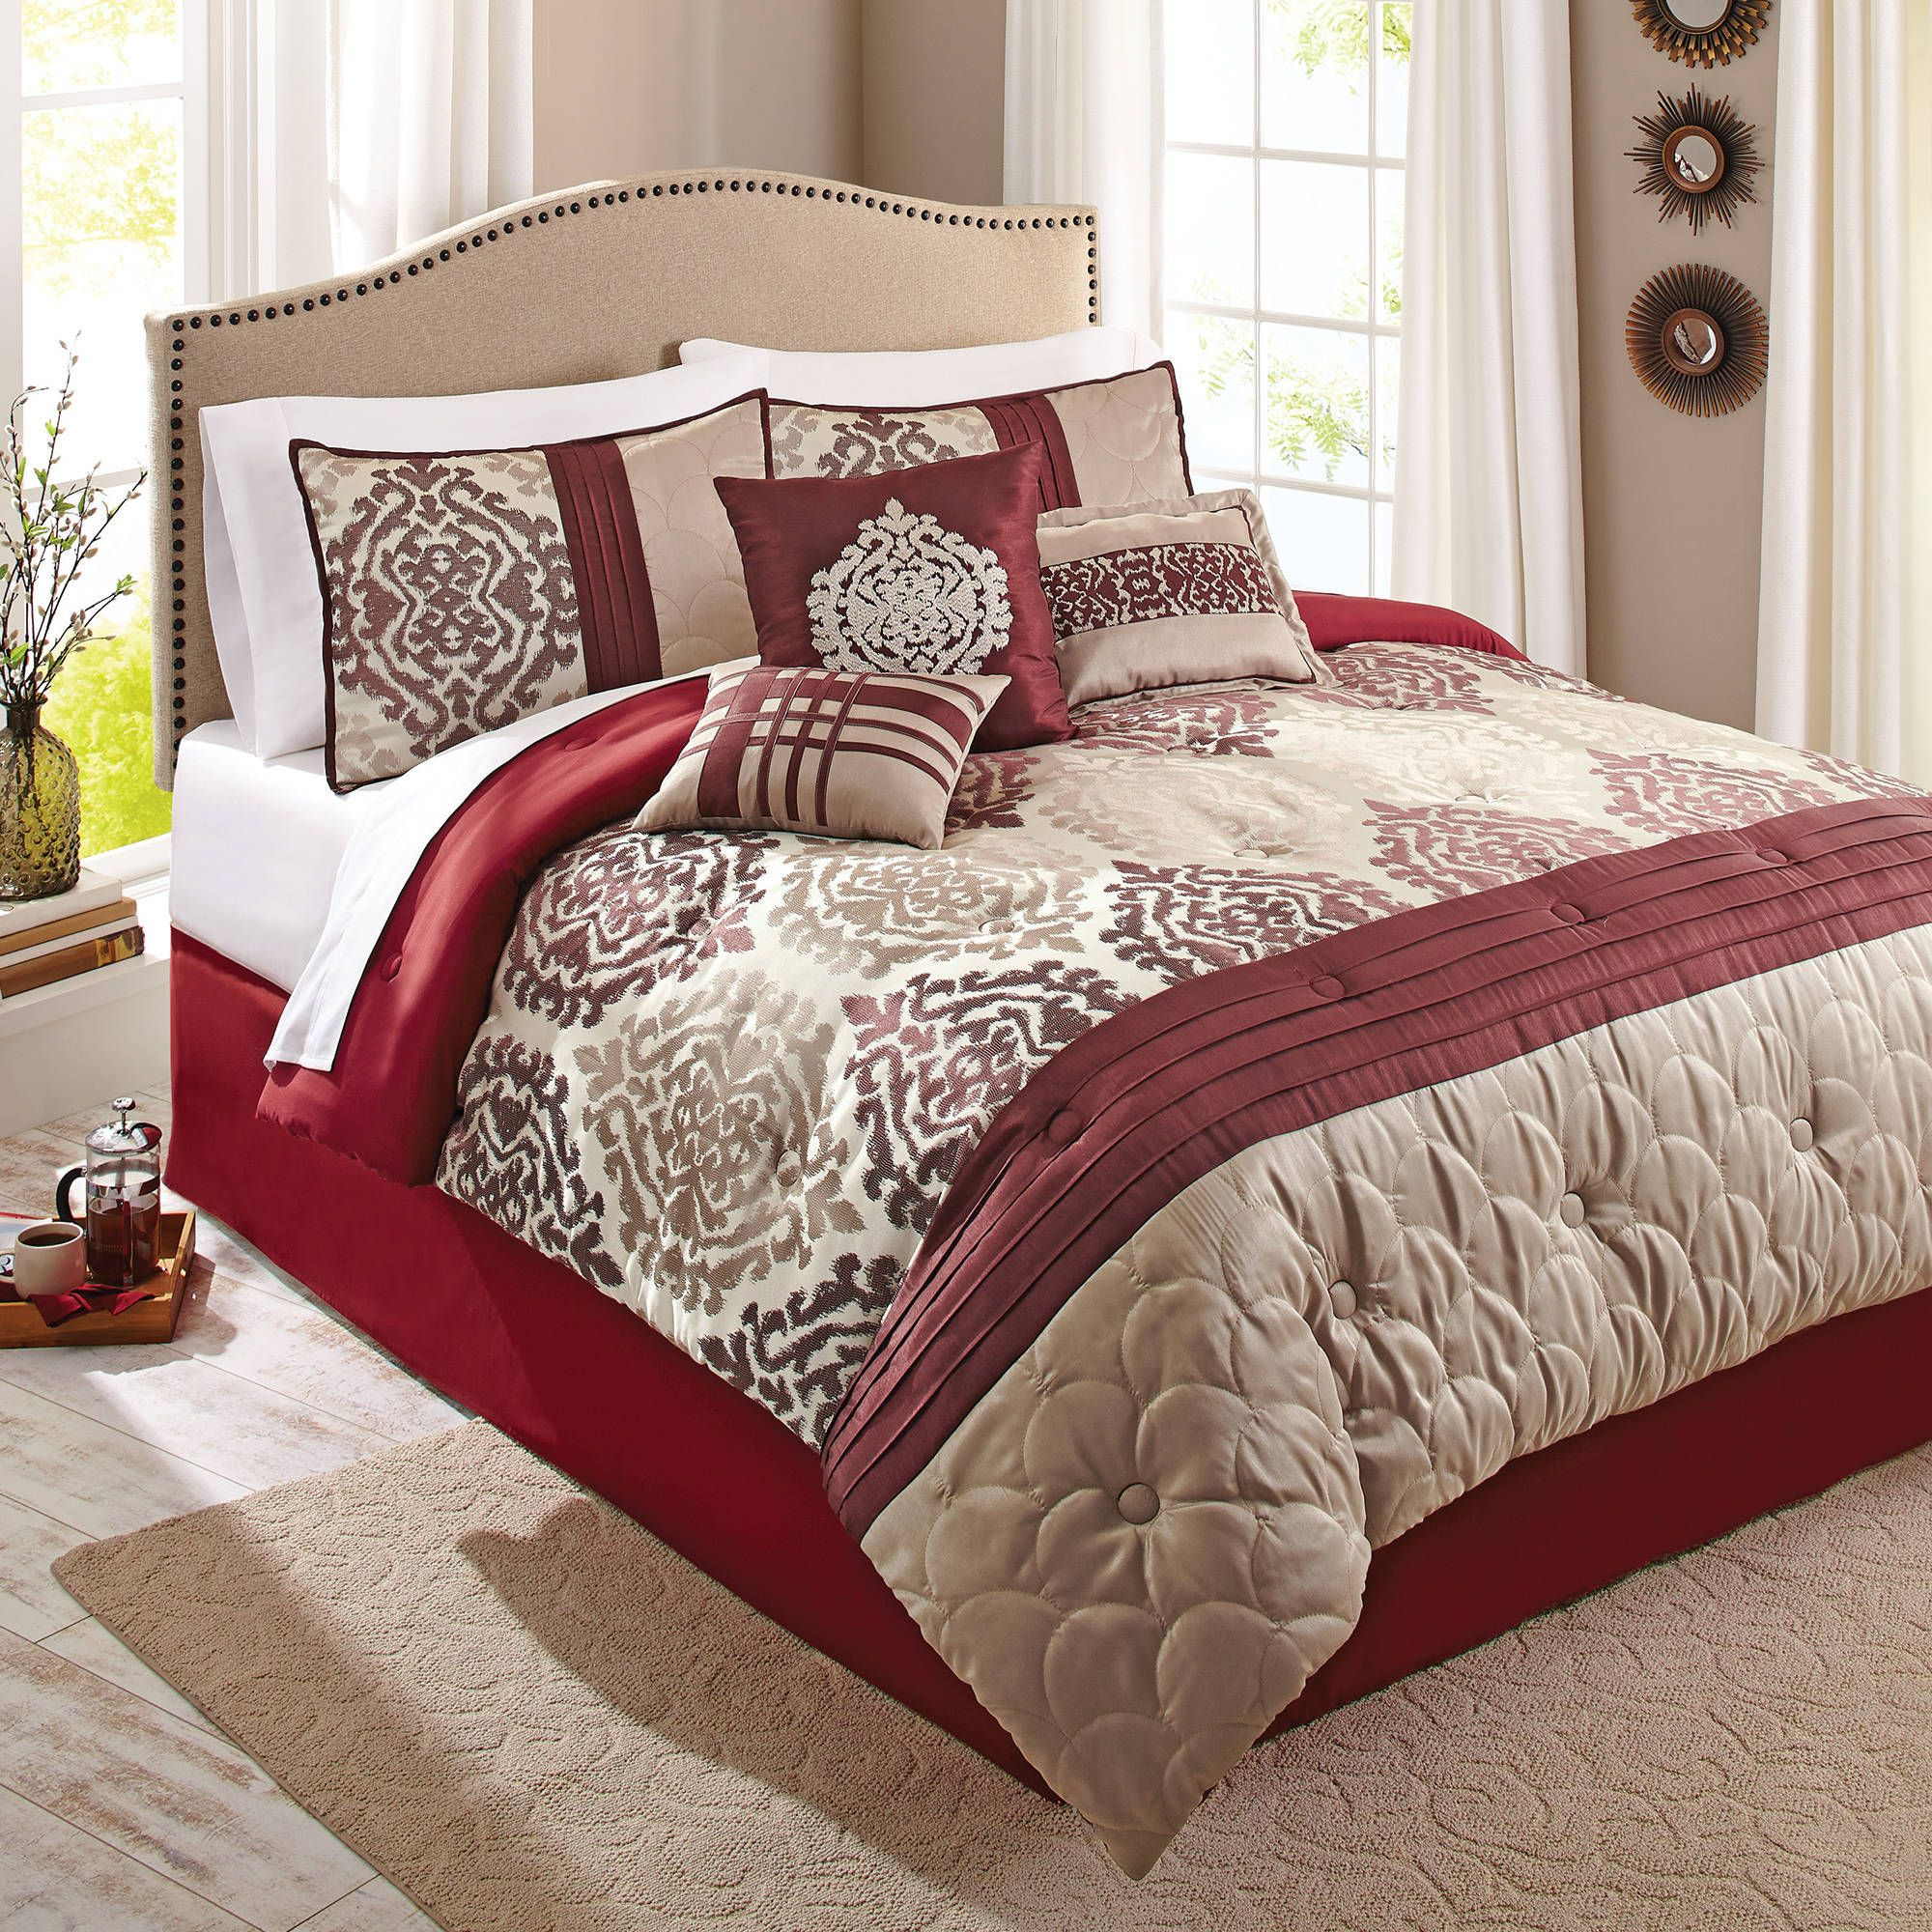 better homes and gardens 7piece bedding comforter set red ikat